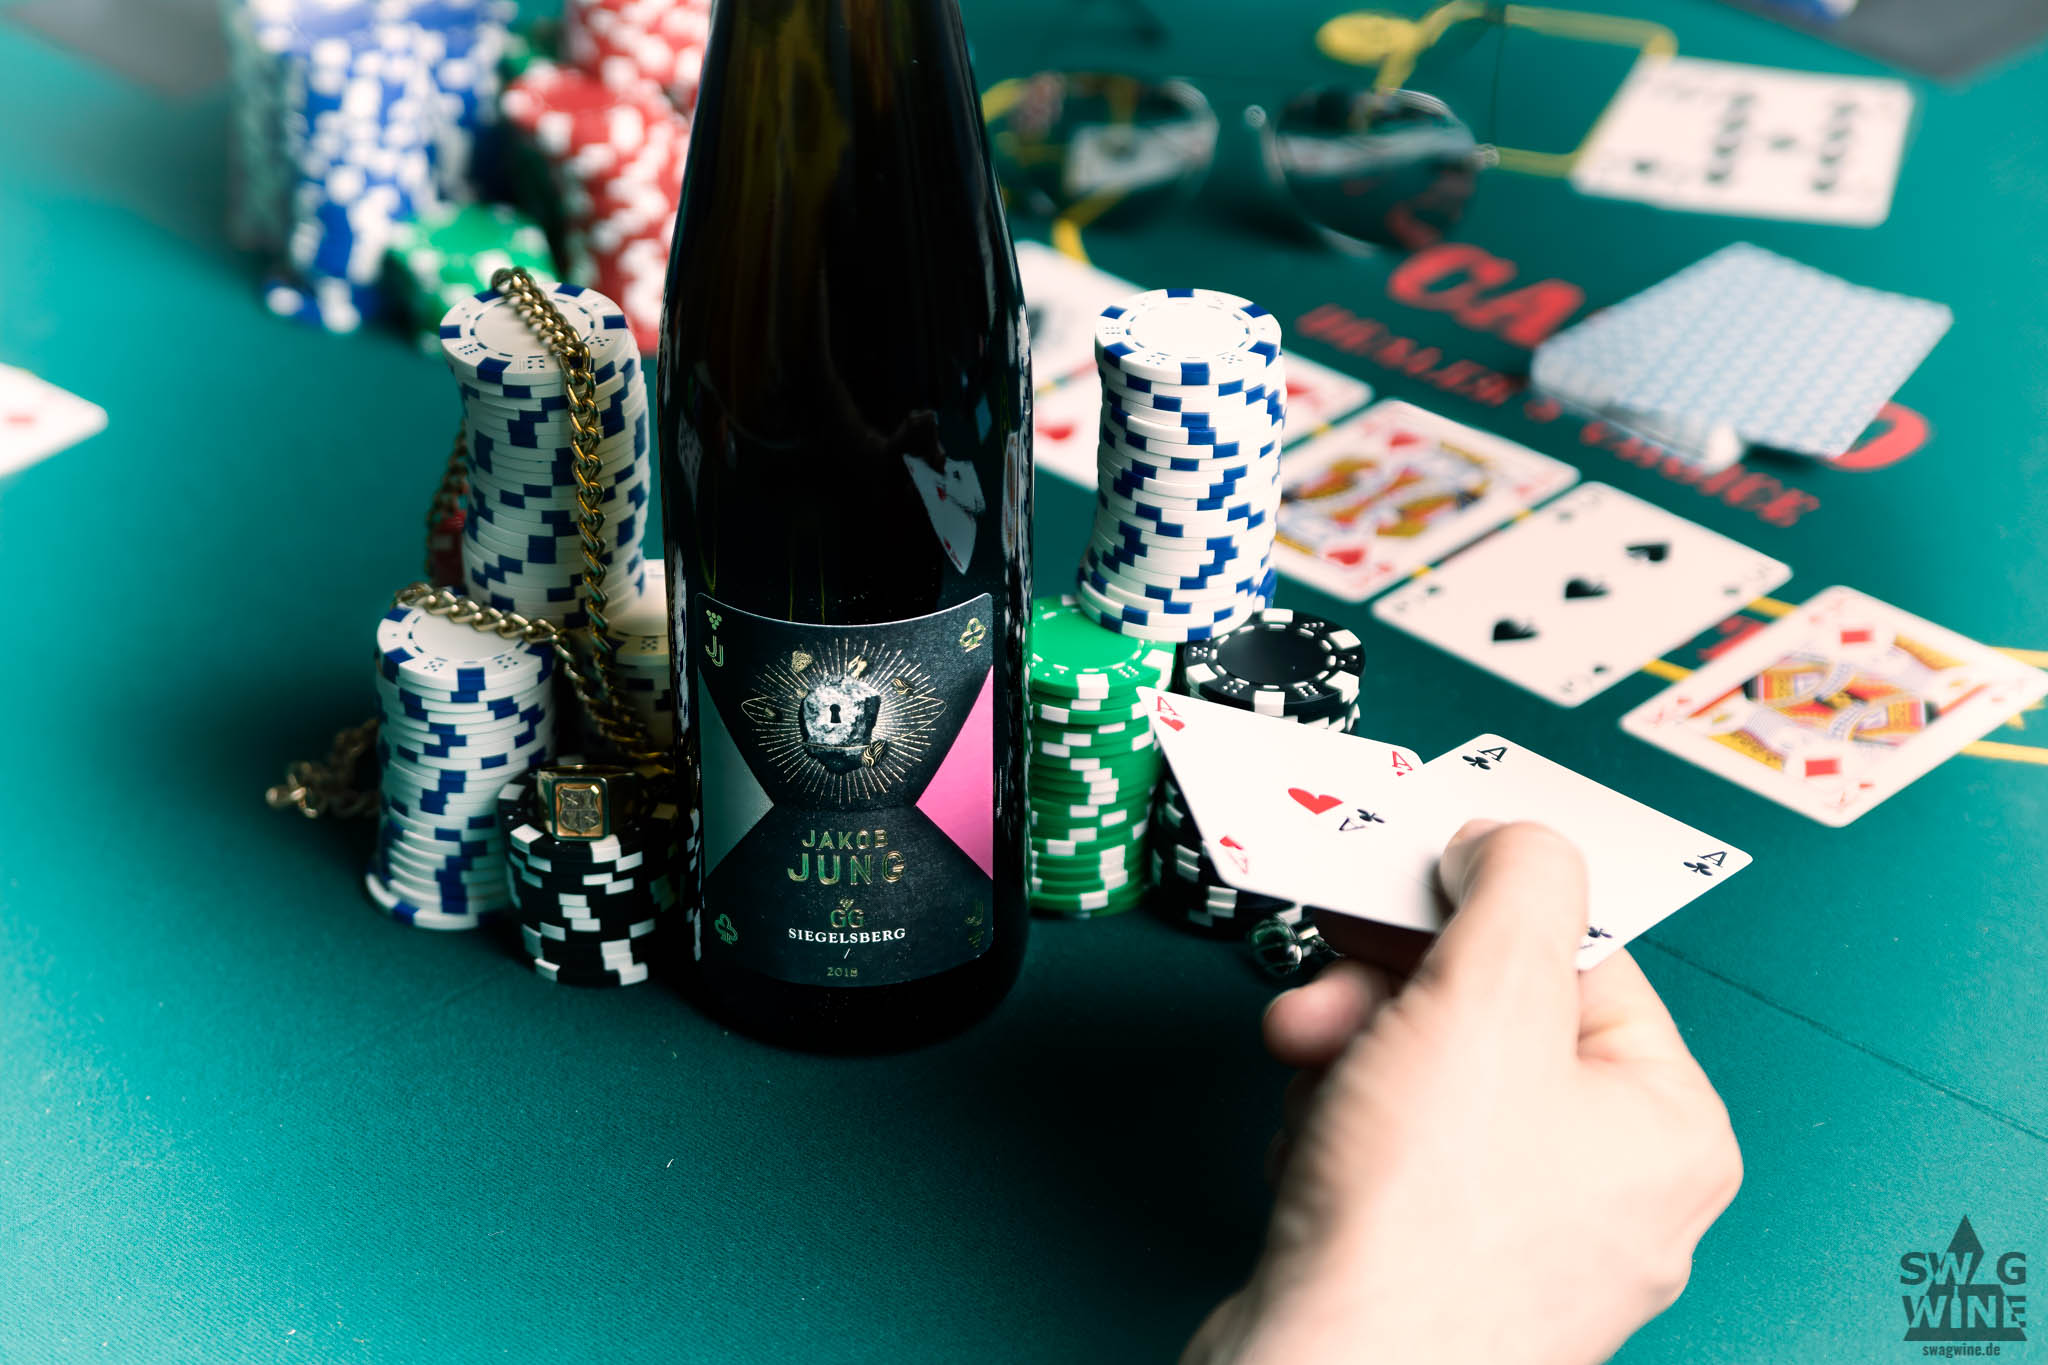 Jakob Jung Riesling GG Siegelsberg All in Poker